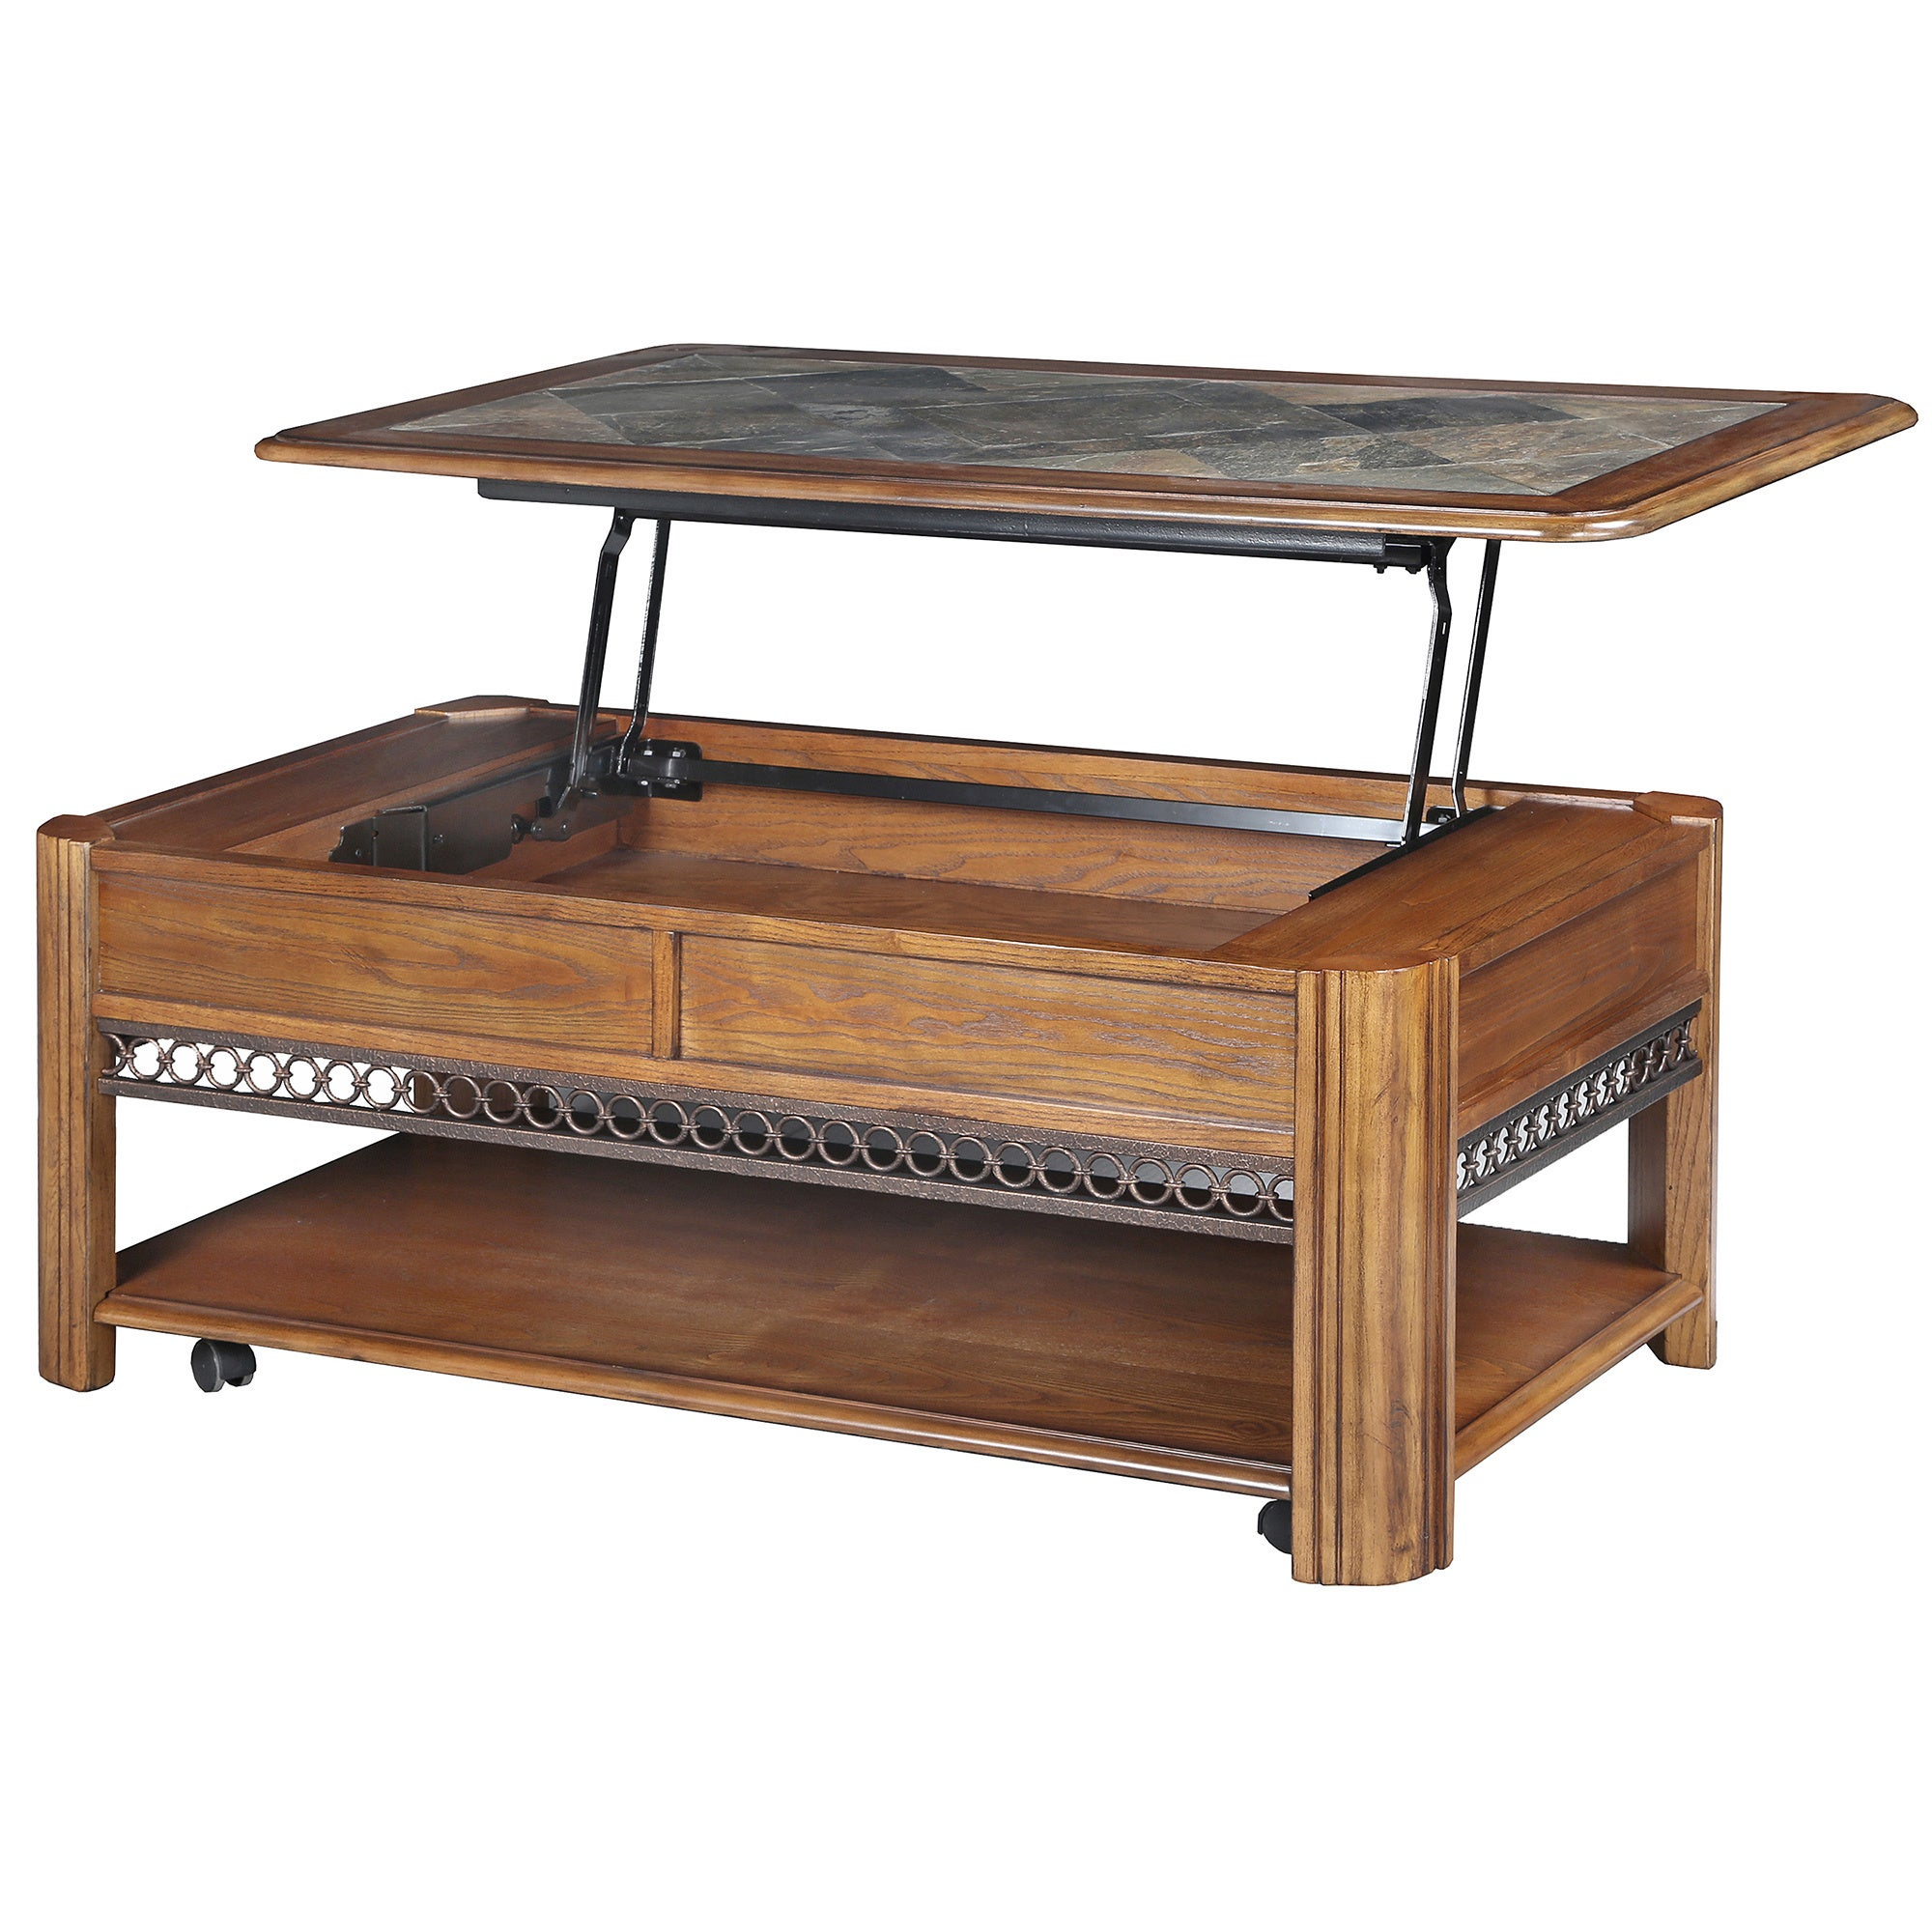 Madison Rustic Warm Nutmeg Lift Top Coffee Table with Casters